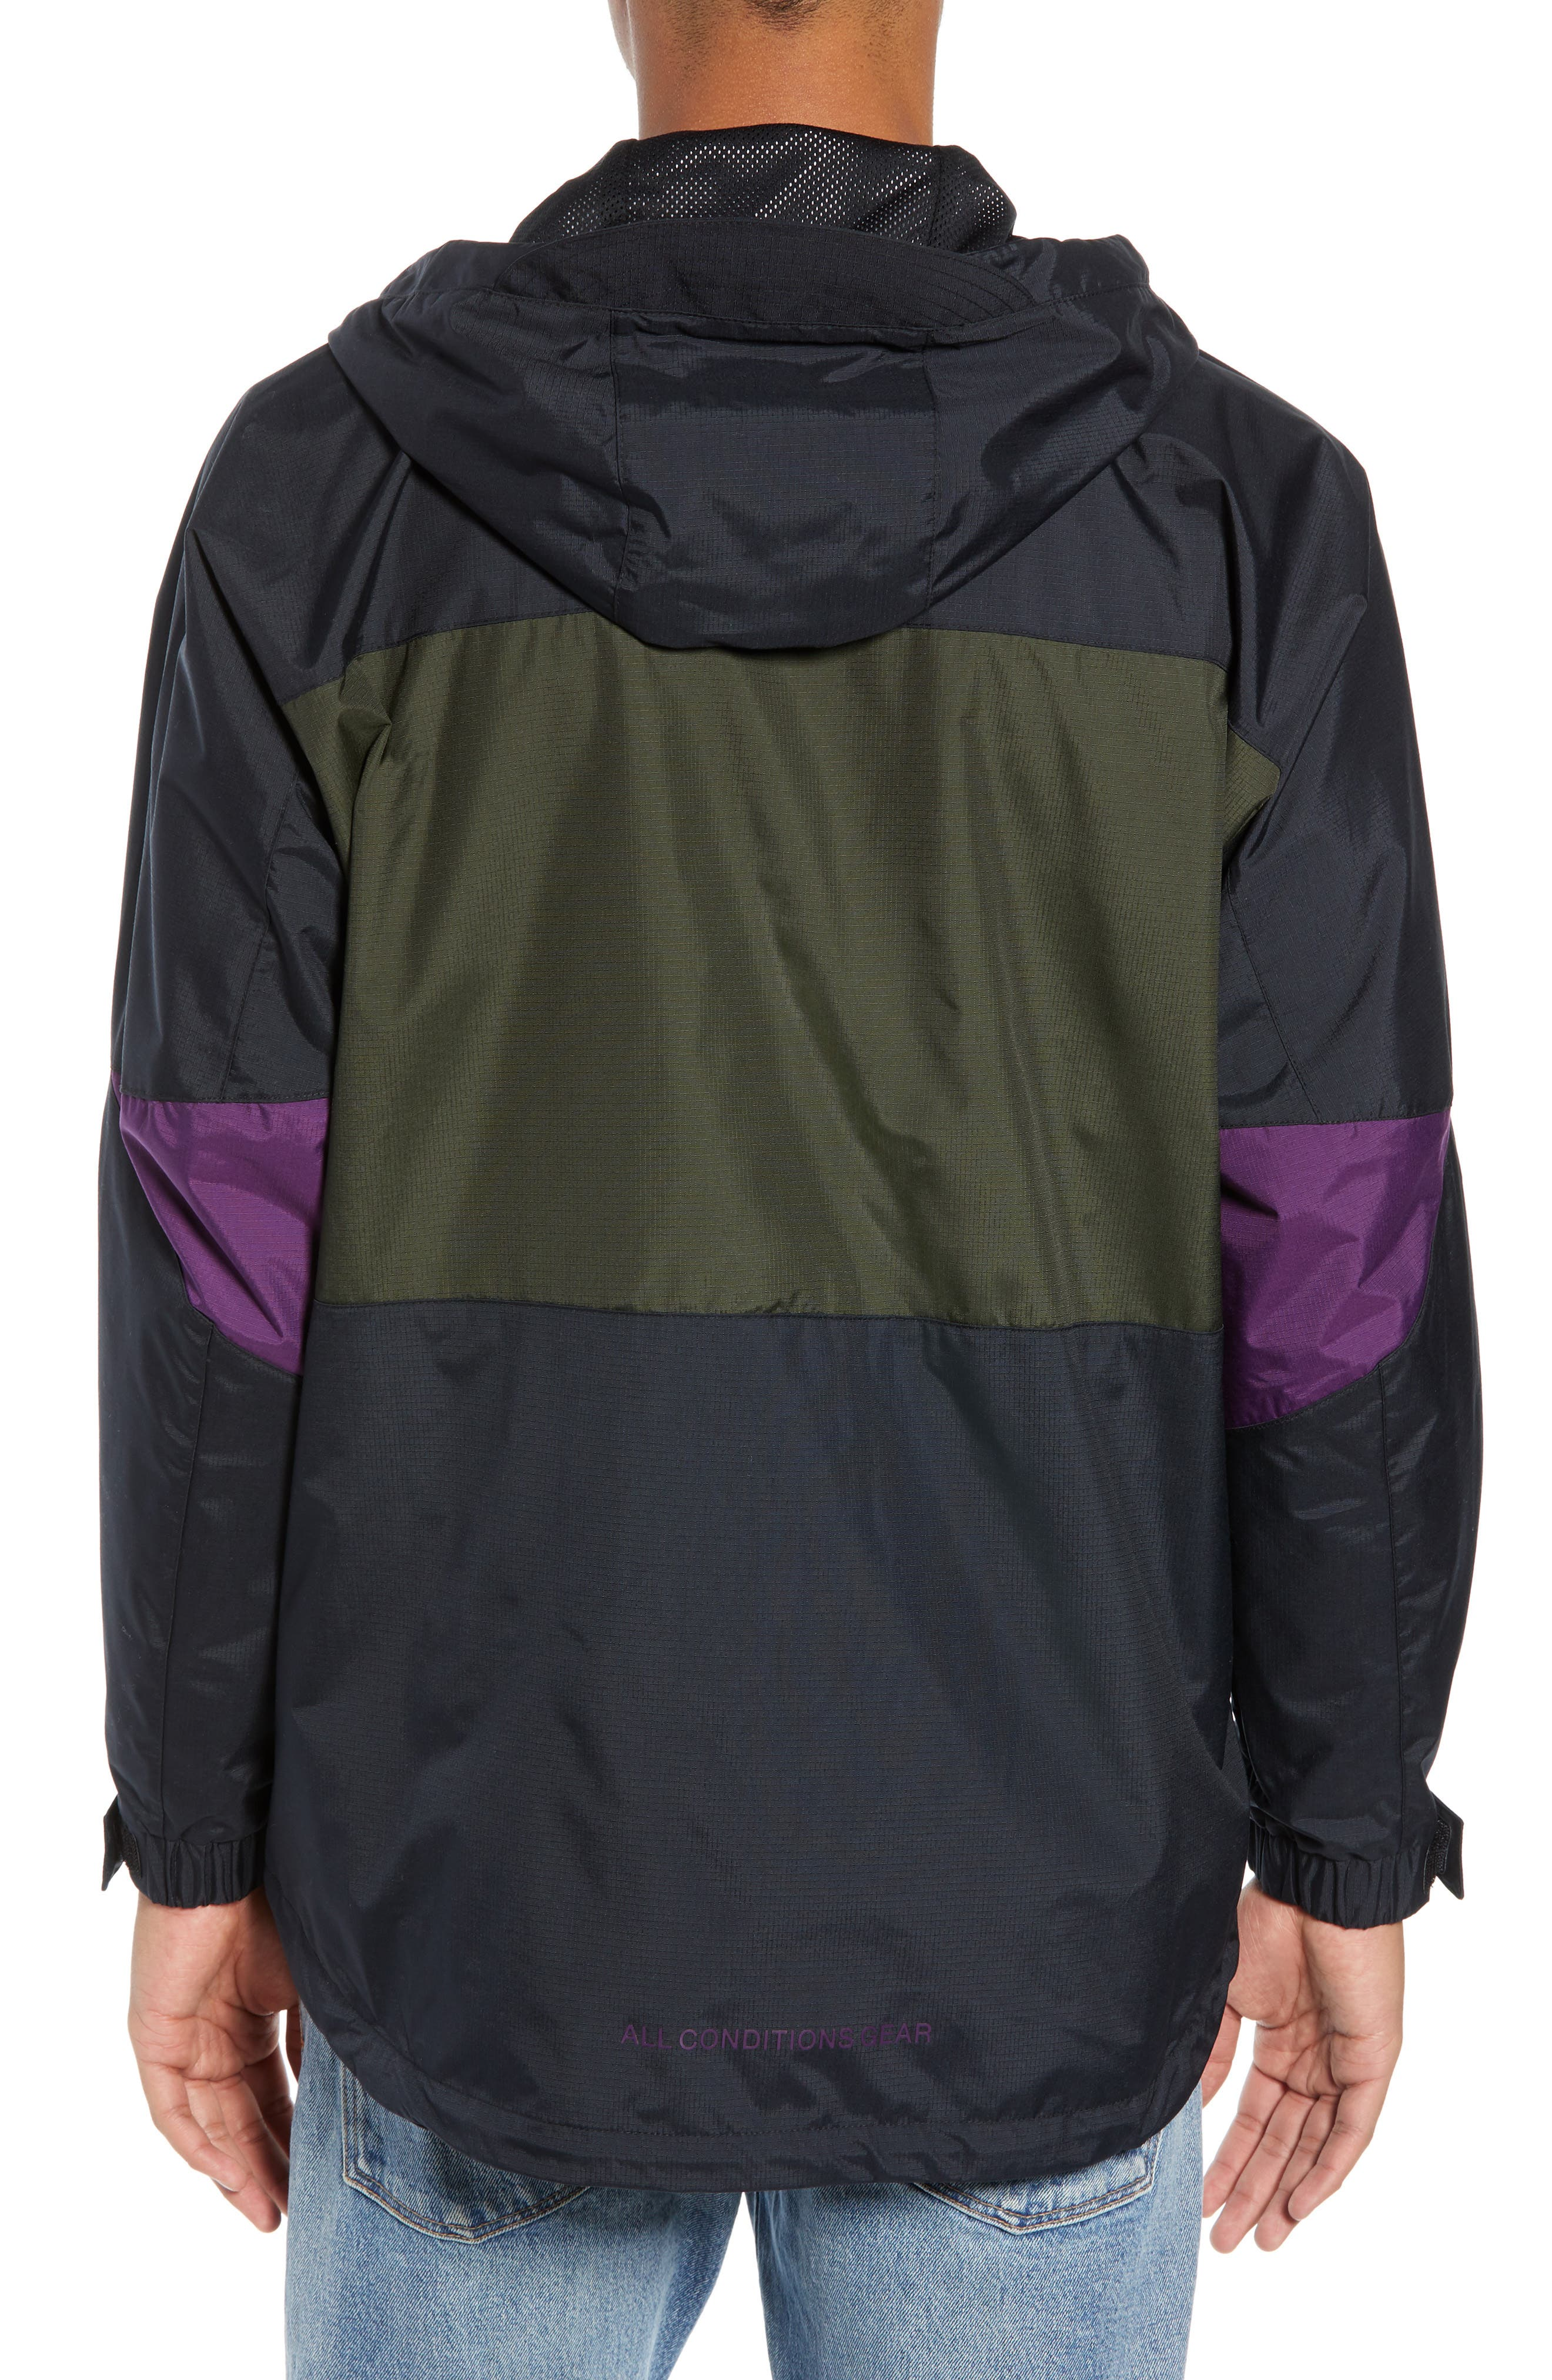 ACG Men's Anorak Jacket,                             Alternate thumbnail 2, color,                             BLACK/ SEQUOIA/ BLACK